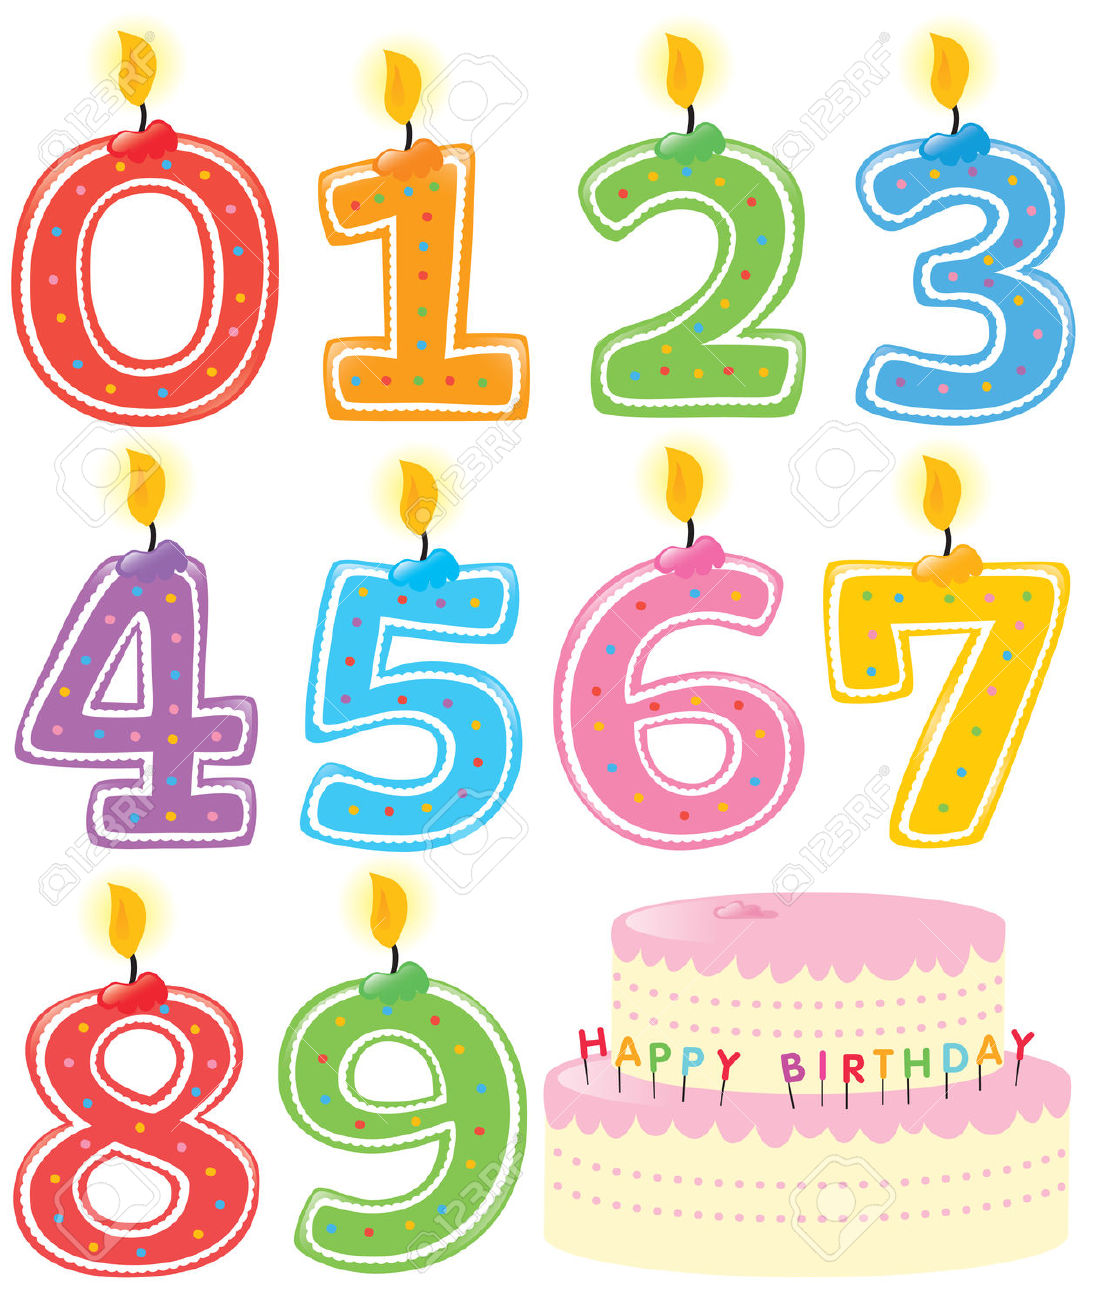 birthday numbers clipart ; bba7ee4099e48e664503653631a67125